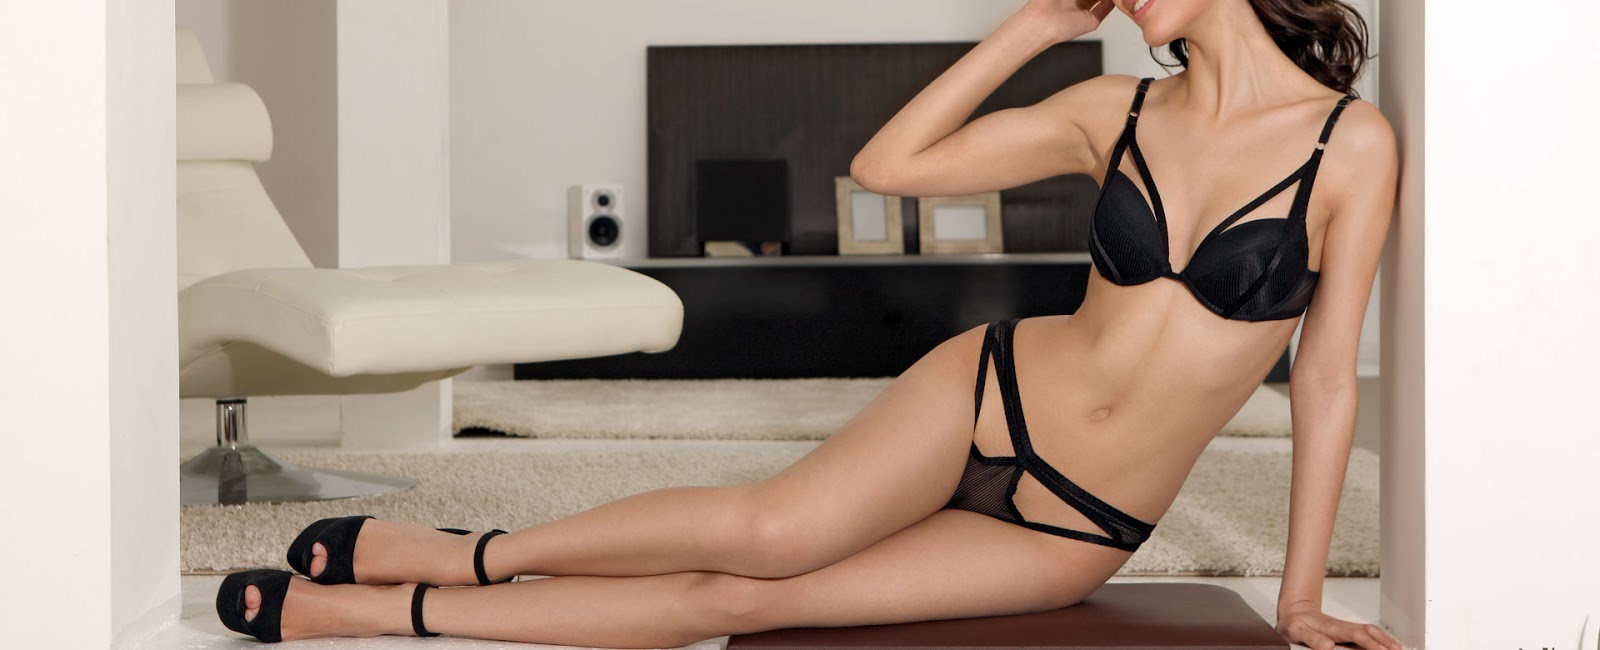 escort service vip match meetic